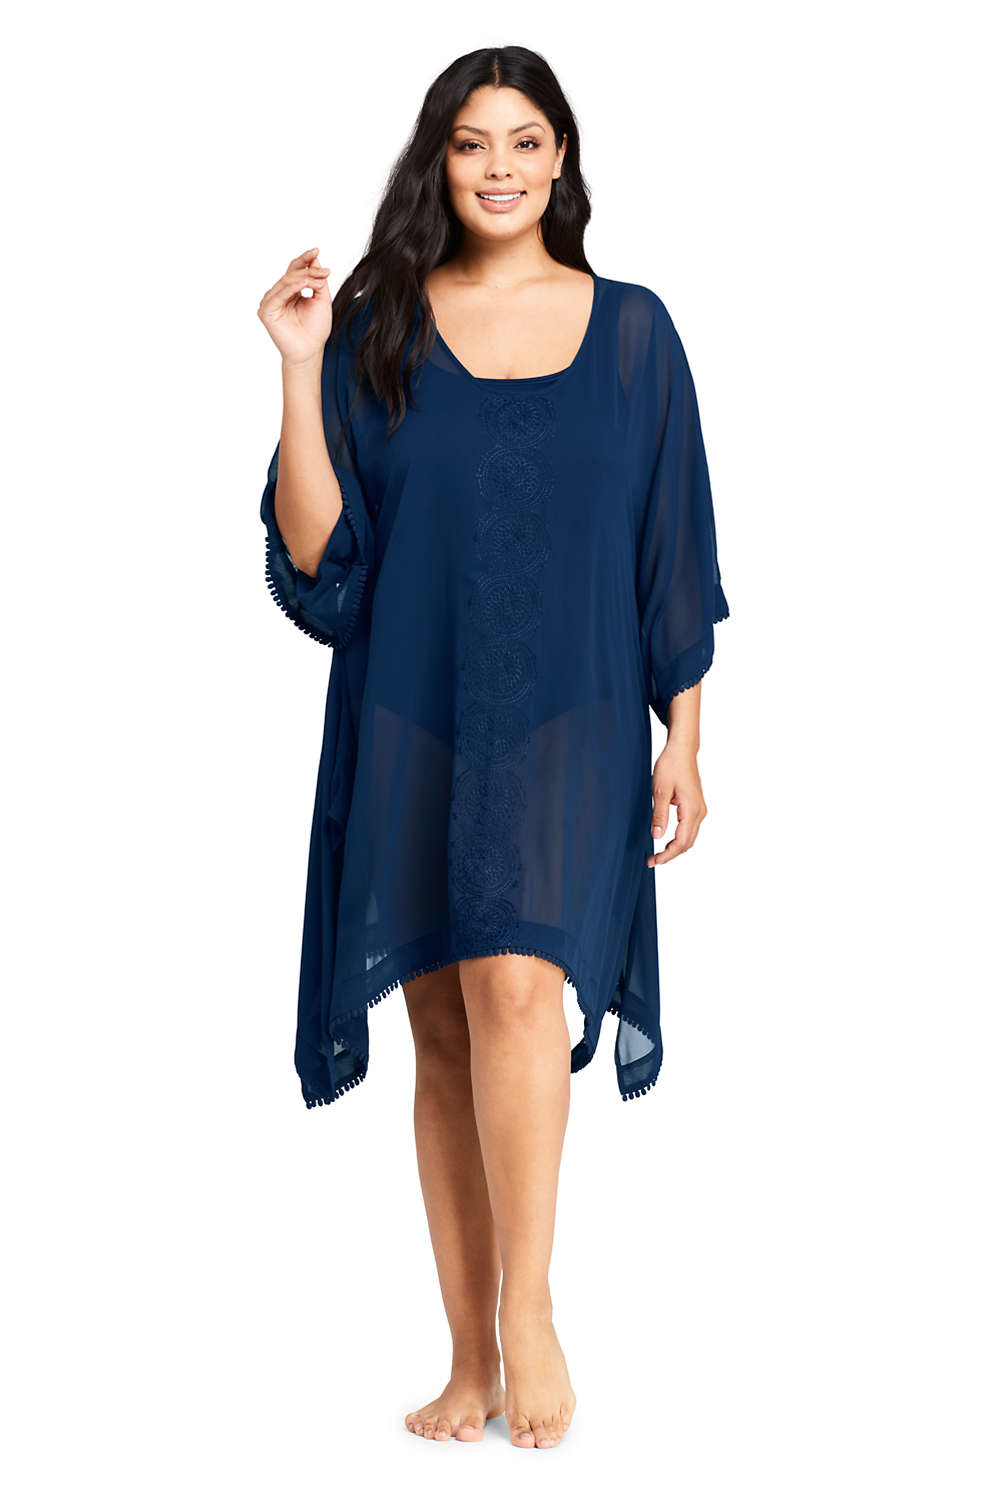 Women S Plus Size Embroidered Woven Dolman Caftan Swim Cover Up From Lands End